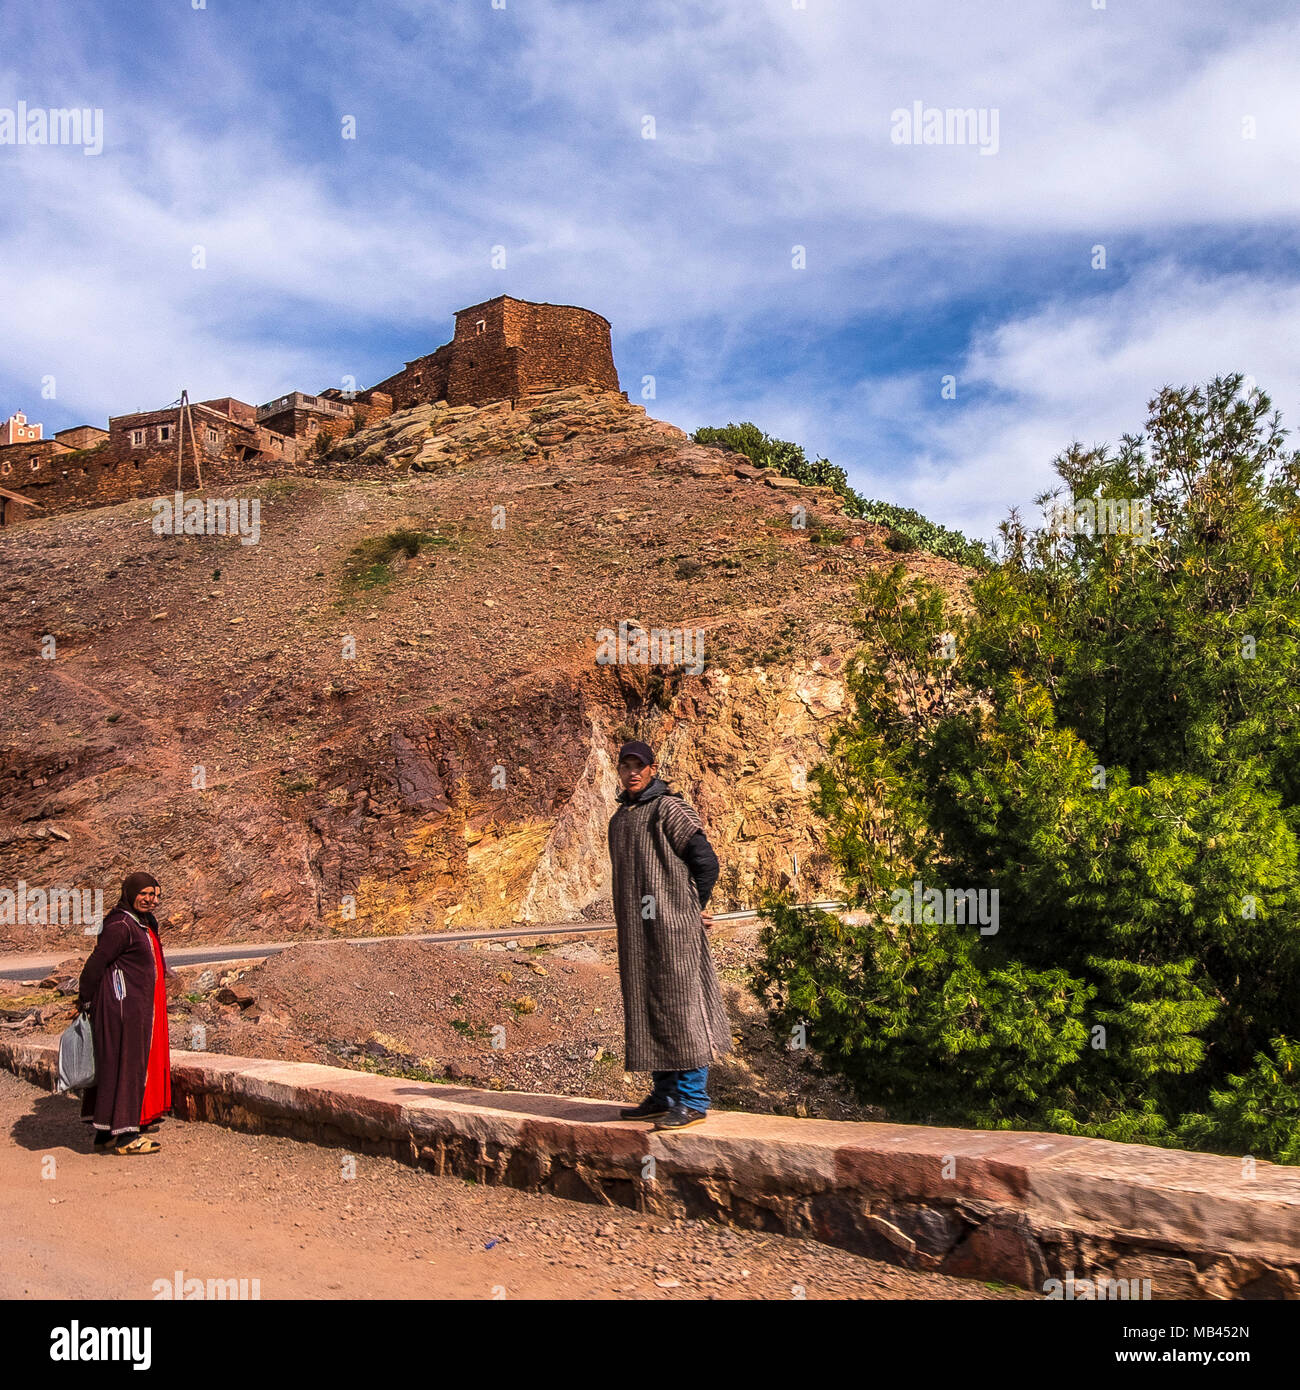 berbers by roadside in atlas mountains, morocco - Stock Image